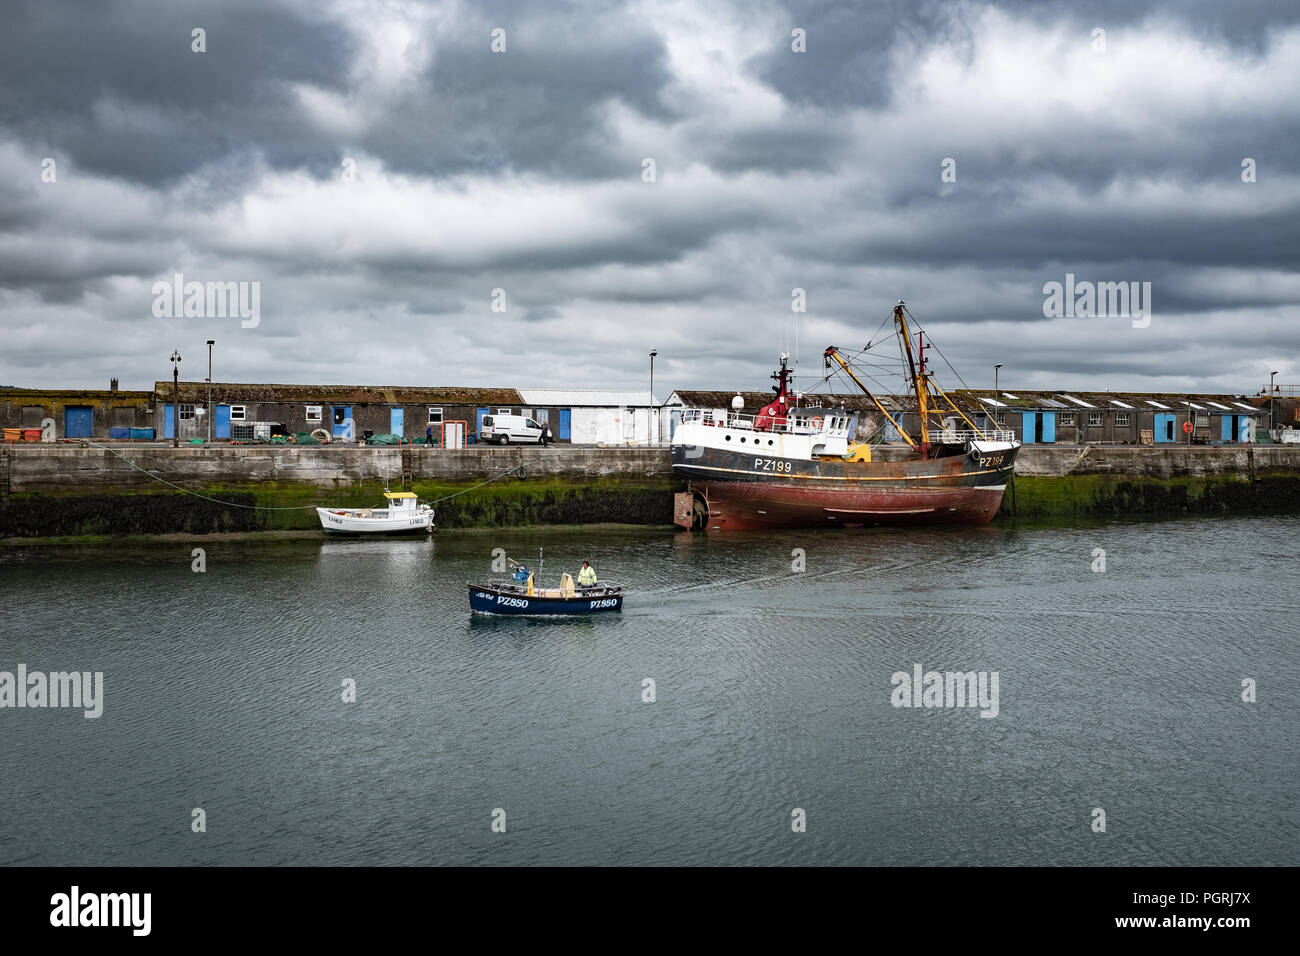 Small fishing boat returning to harbour, in Newlyn. In Newlyn, Cornwall, England. On 20th June 2018. - Stock Image